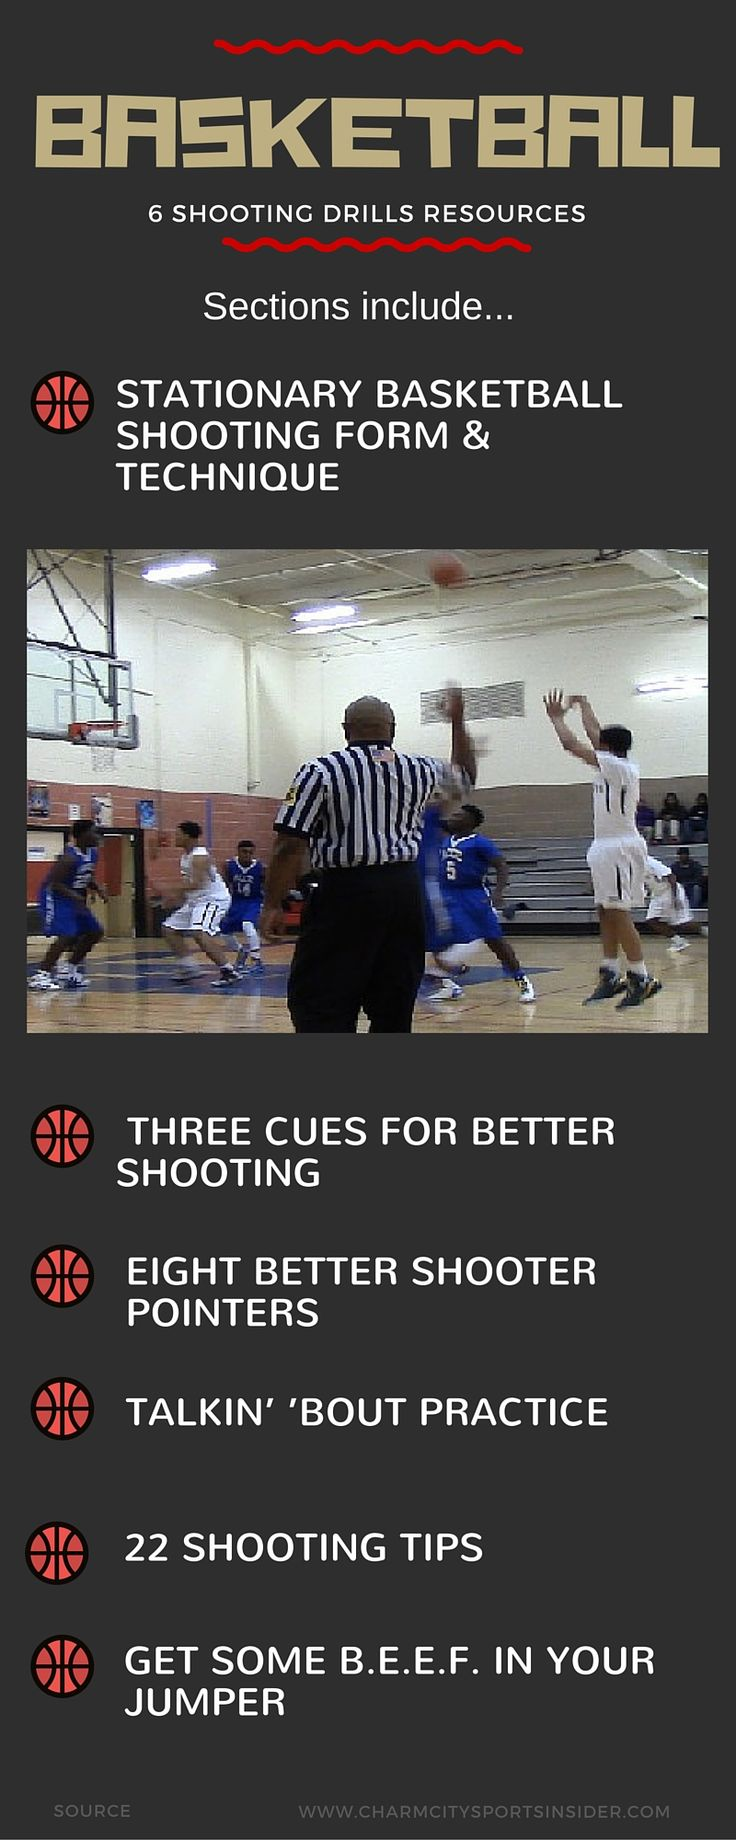 Six Basketball Shooting Drills Resources                                                                                                                                                                                 More